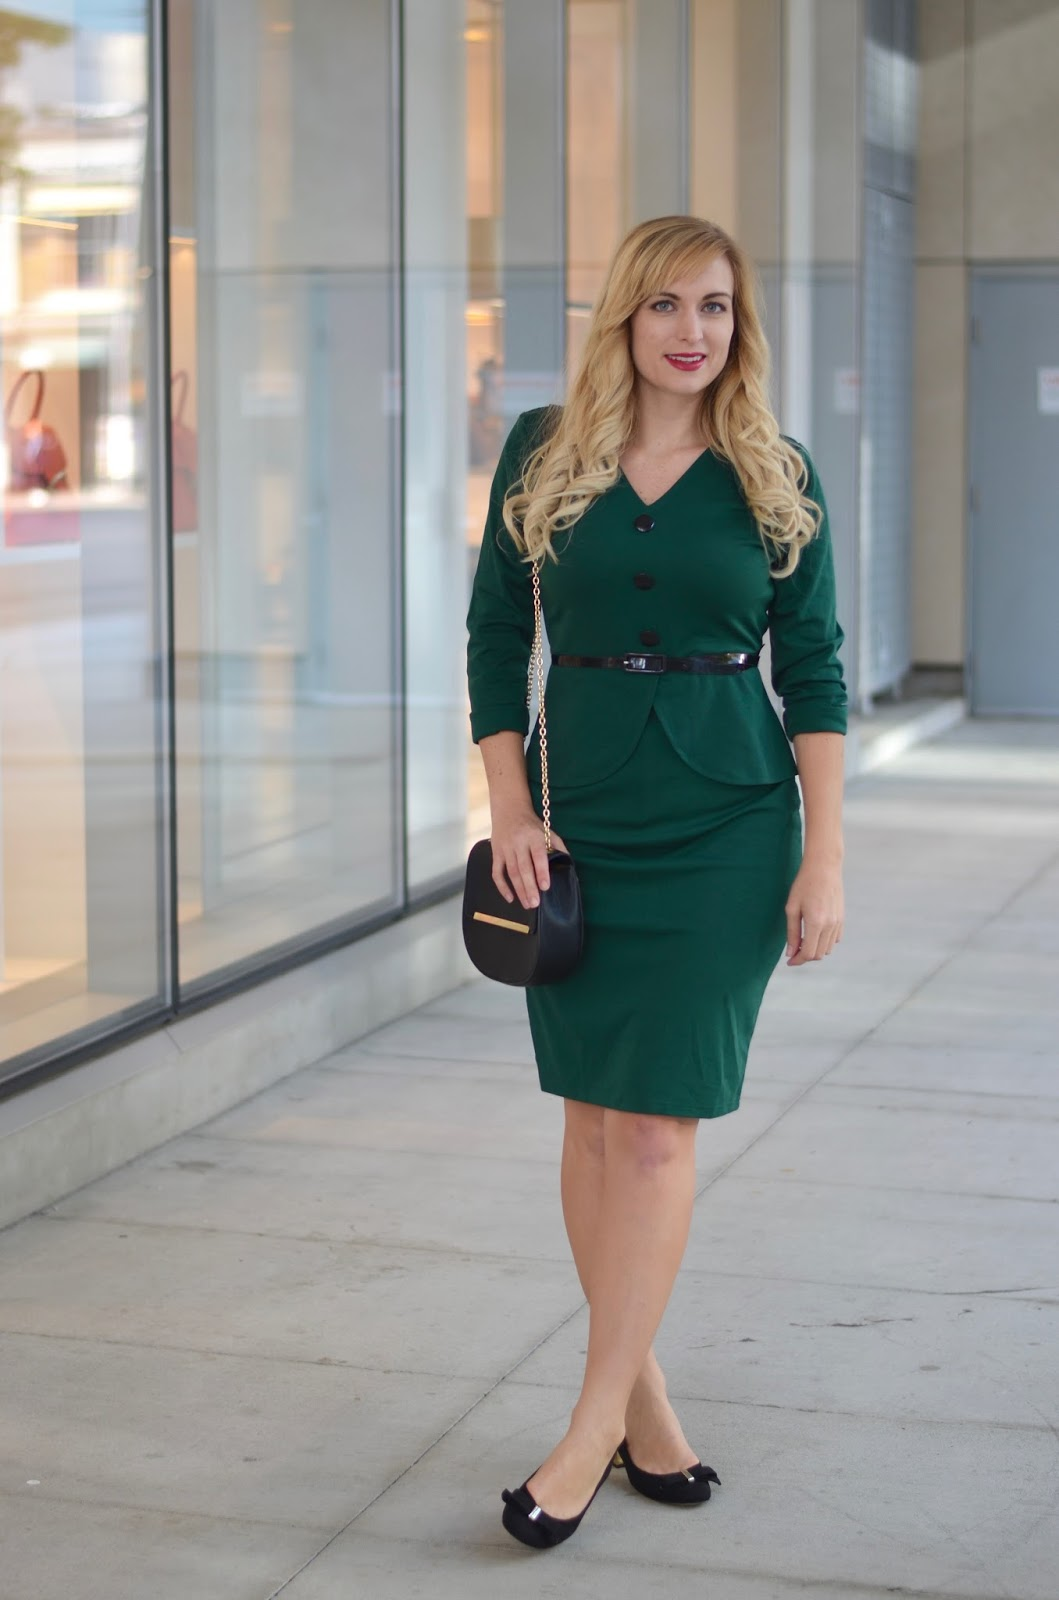 green twenties style office dress